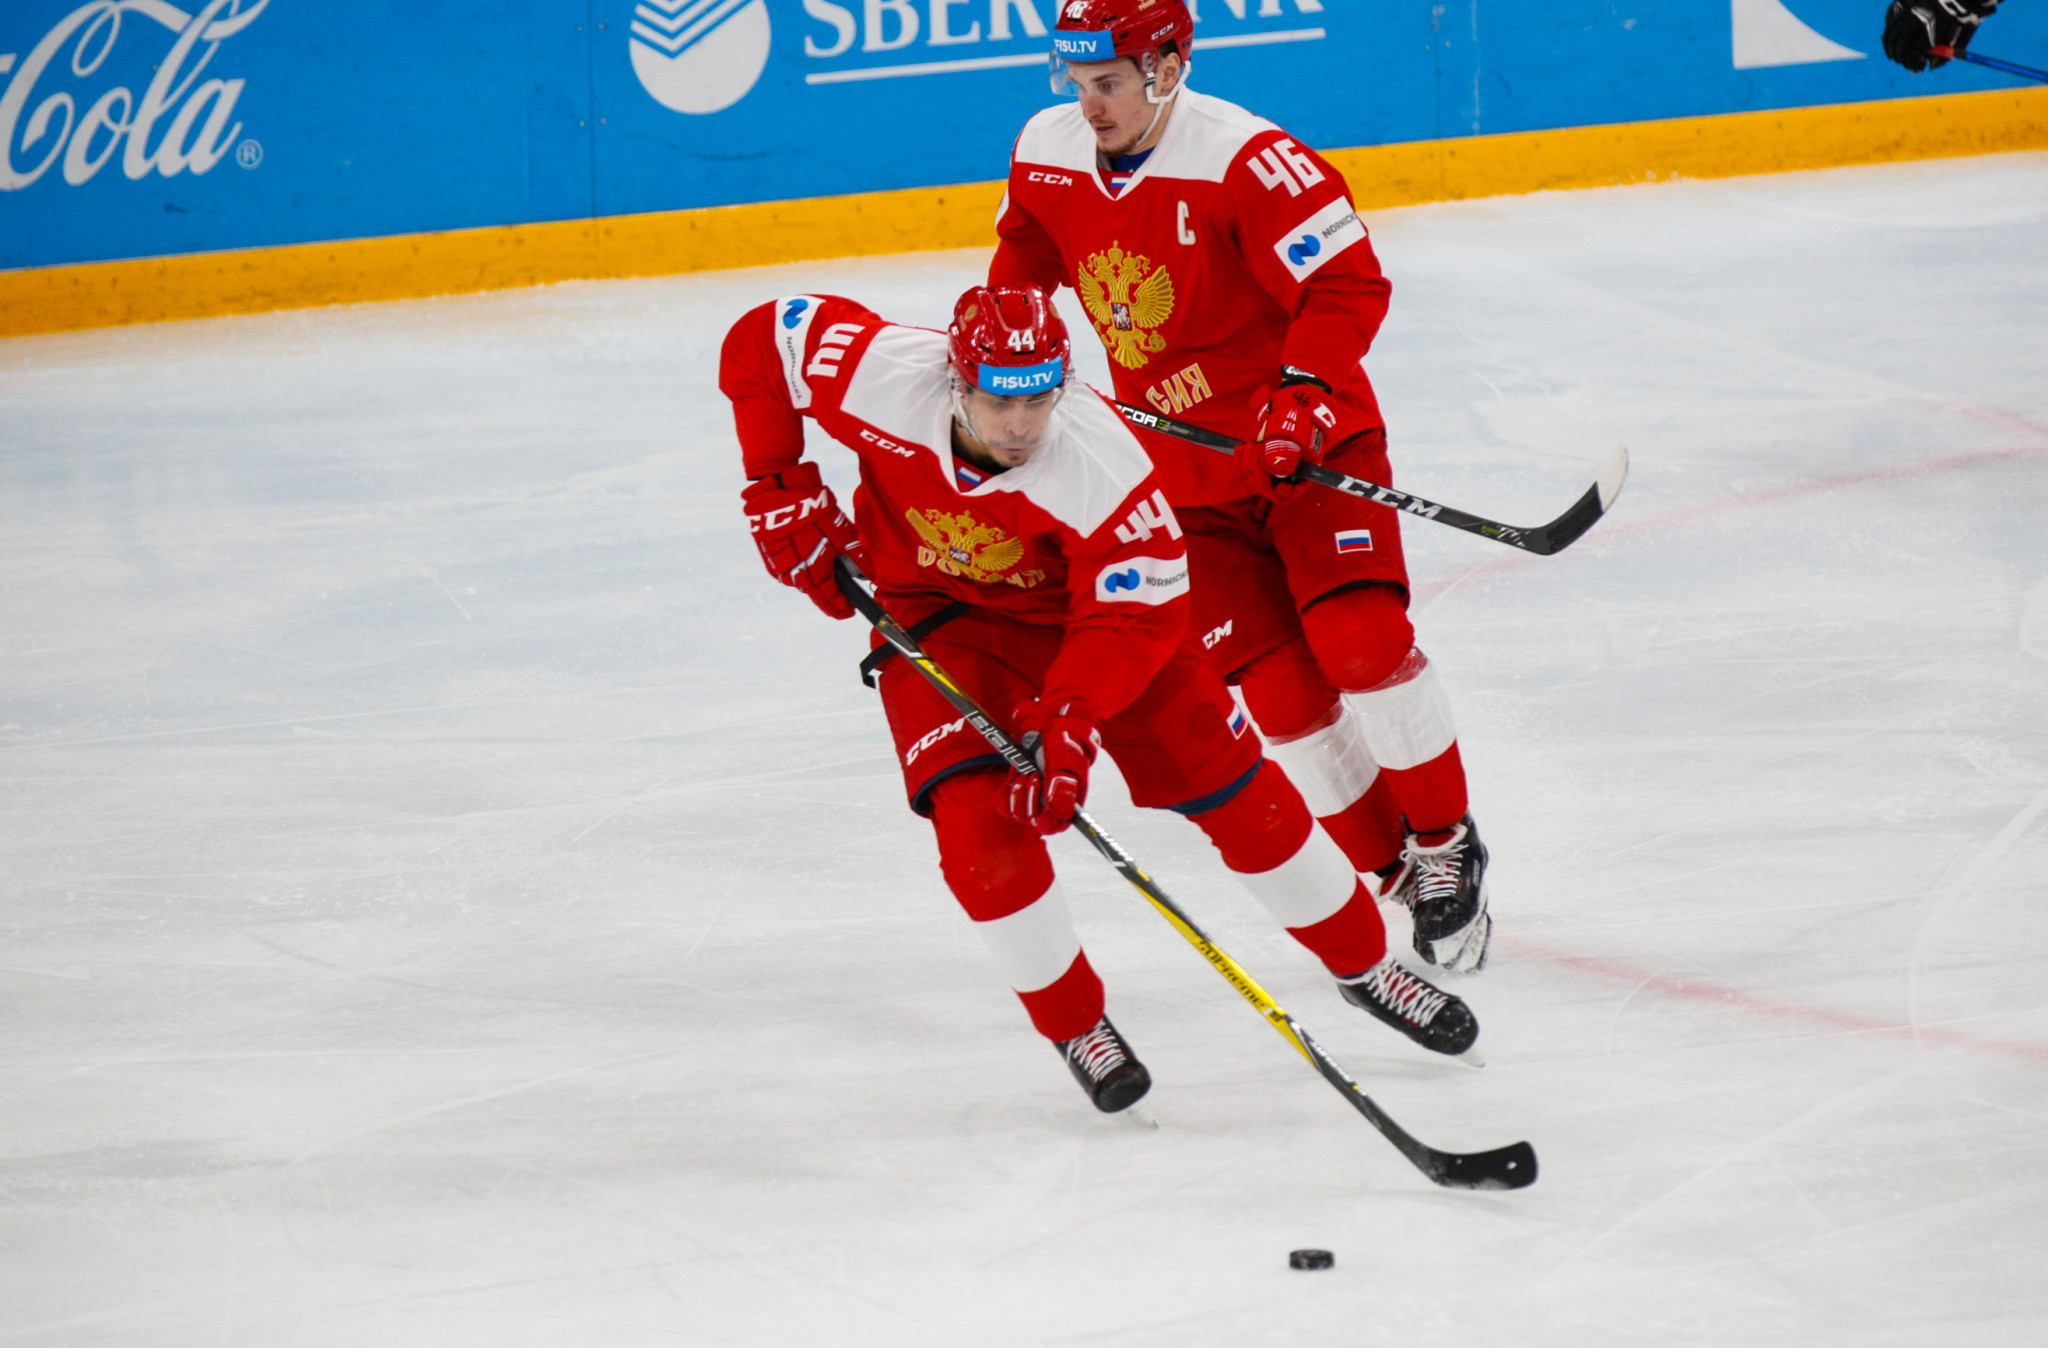 Russia defeated the Czech Republic in the men's ice hockey to progress to the semi-final at the Krasnoyarsk 2019 Winter Universiade ©Krasnoyarsk 2019